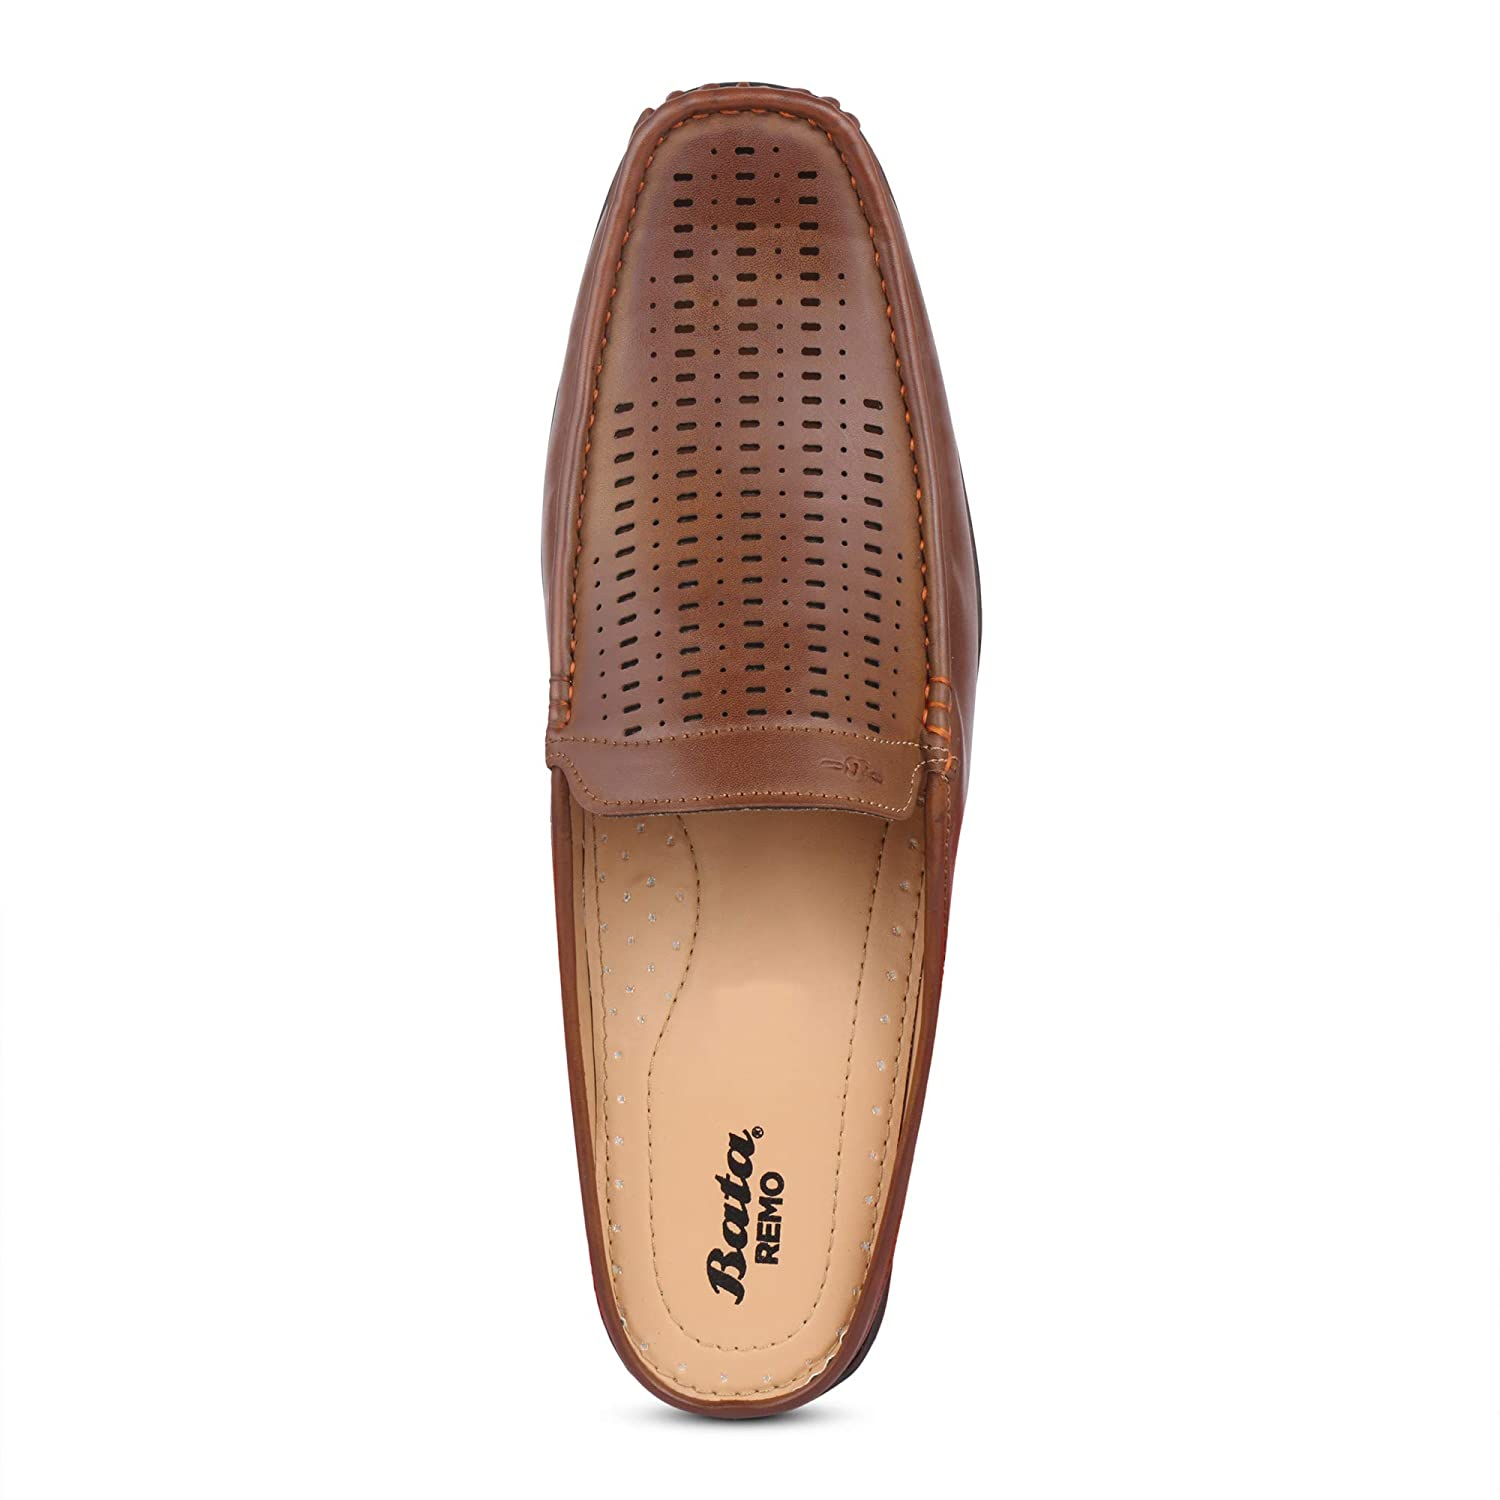 Remo Casual Slip On Loafers-Tan